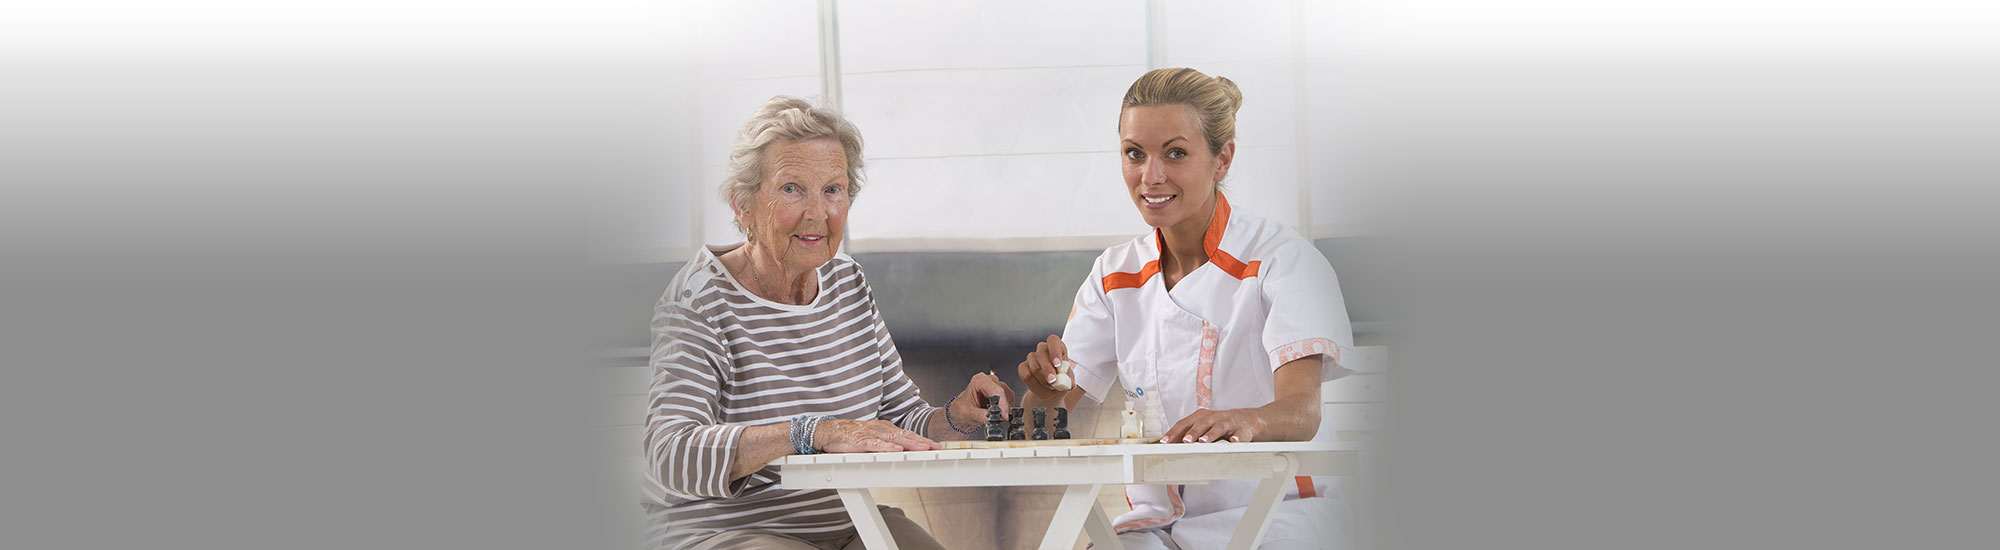 Ayurvedic treatment for Dementia or Cognitive impairment  Causes